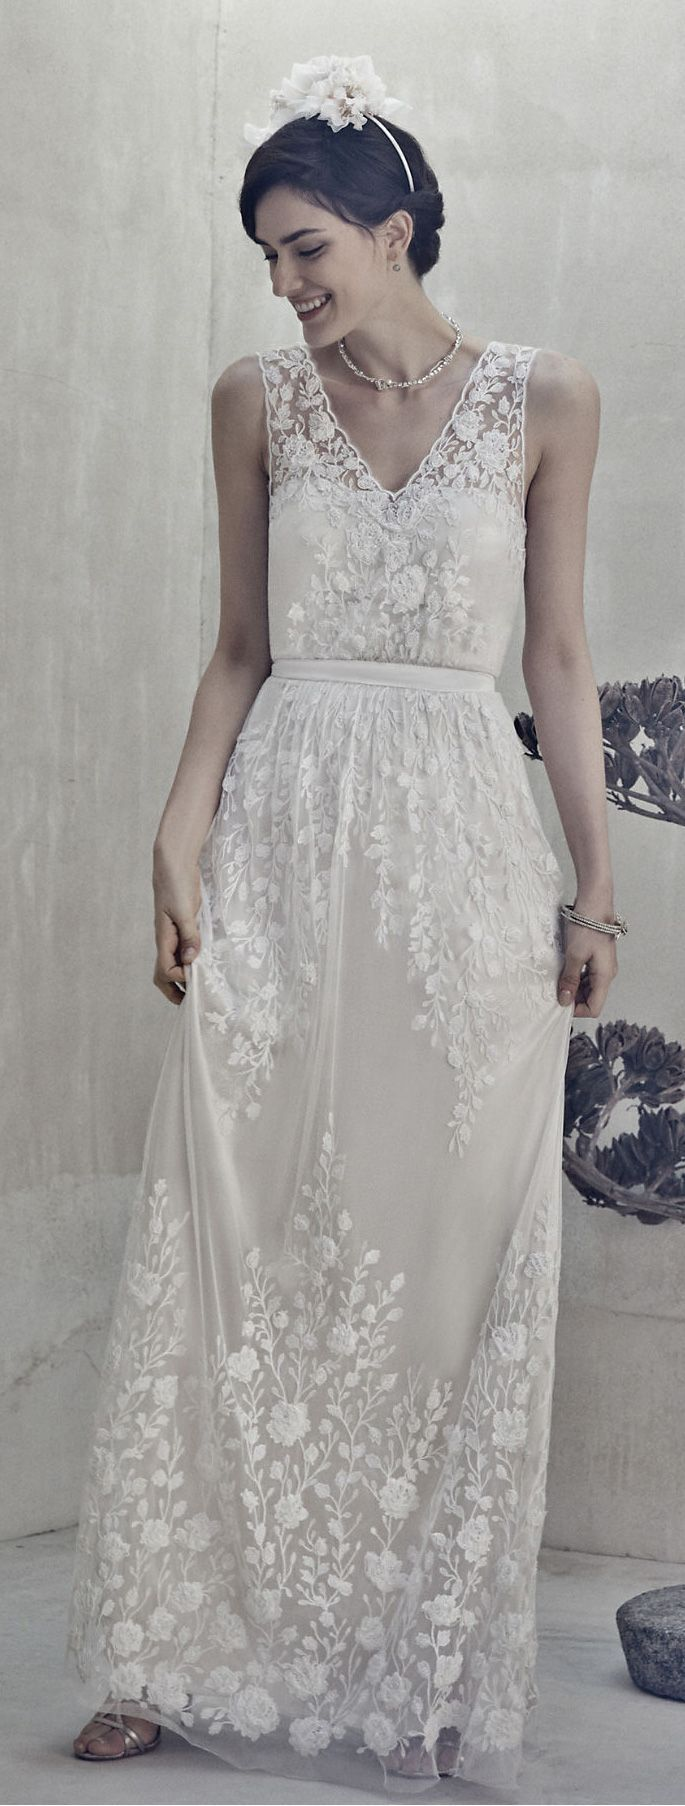 White lace wedding dress with sleeves  Adore this loose white lace wedding dress from BHLDN Weddings